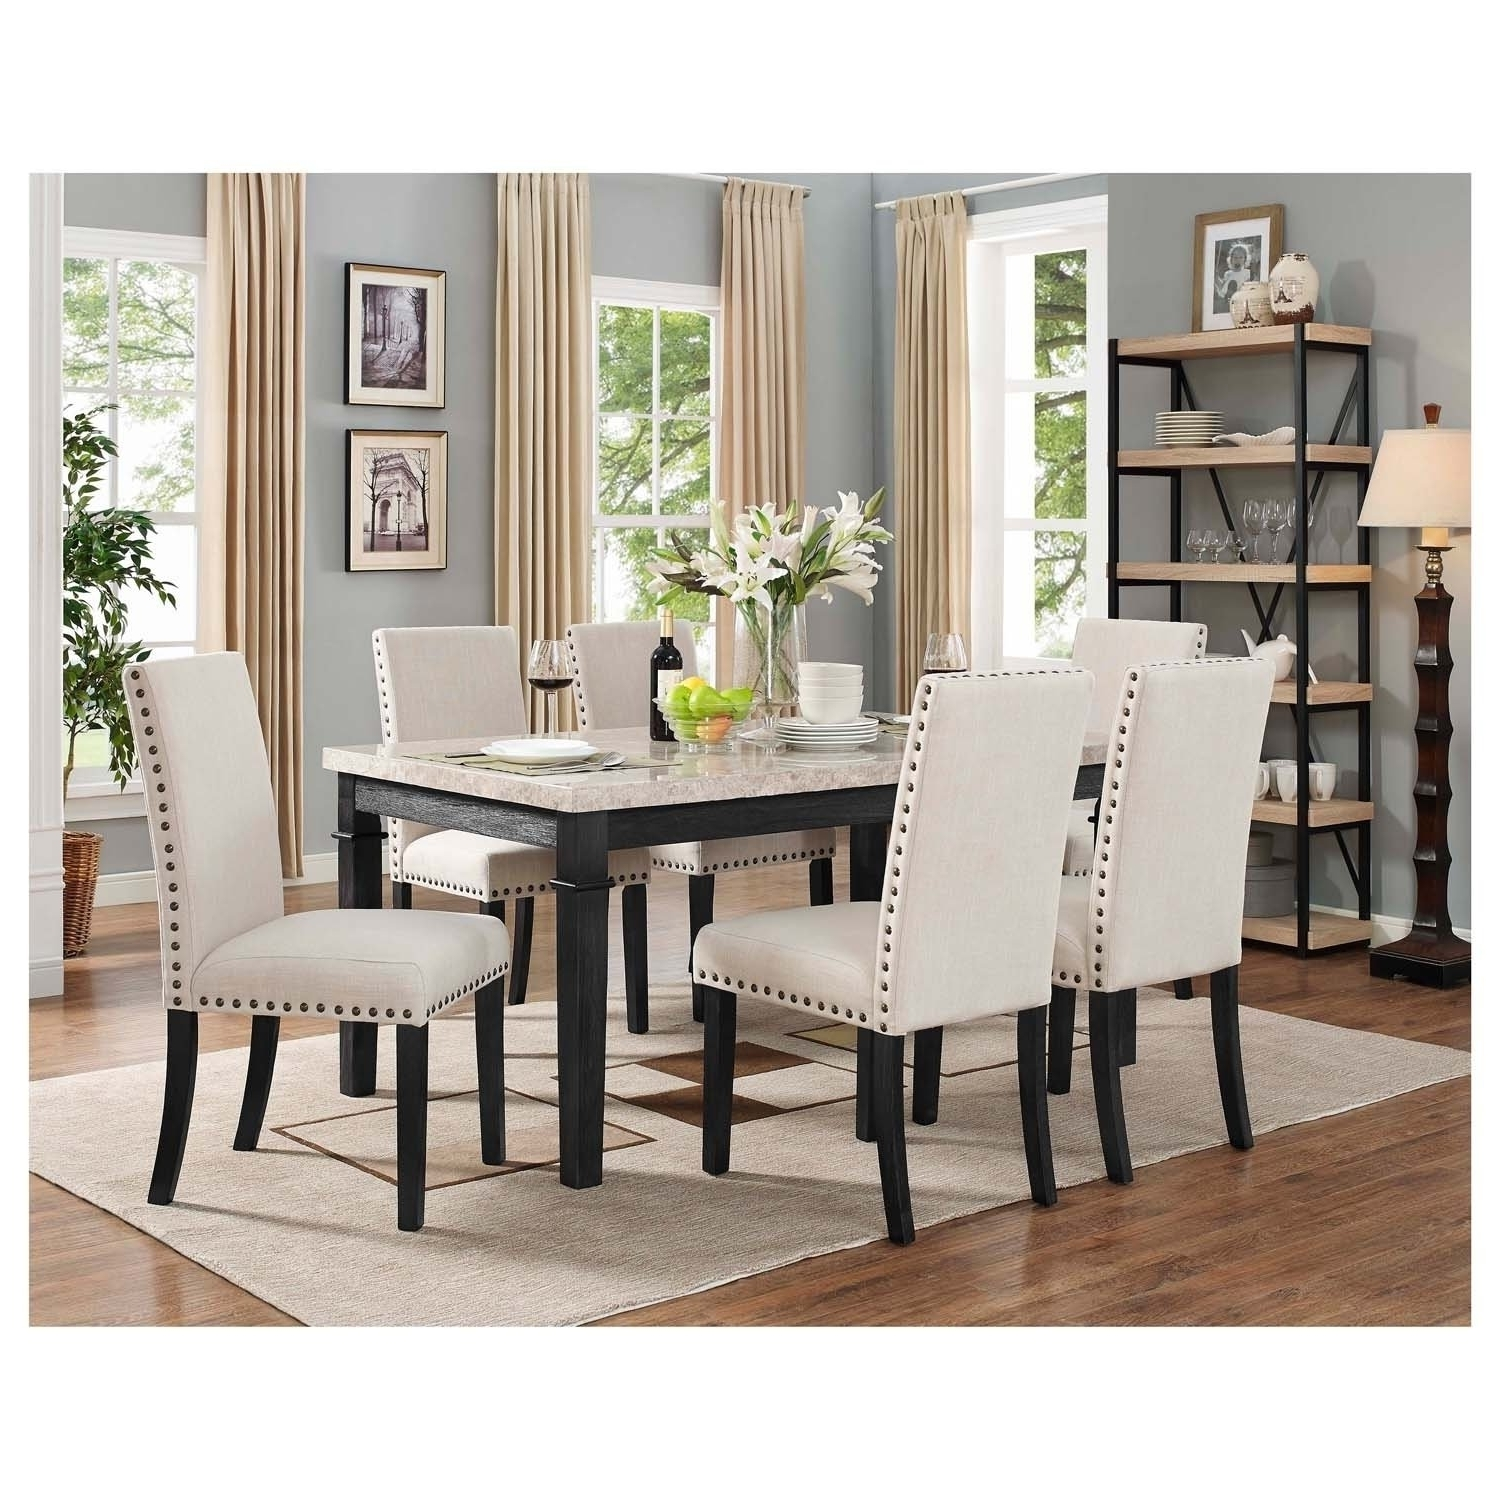 Shop Picket House Furnishings Bradley 7Pc Dining Set Table & 6 In Well Known Gavin 6 Piece Dining Sets With Clint Side Chairs (View 21 of 25)